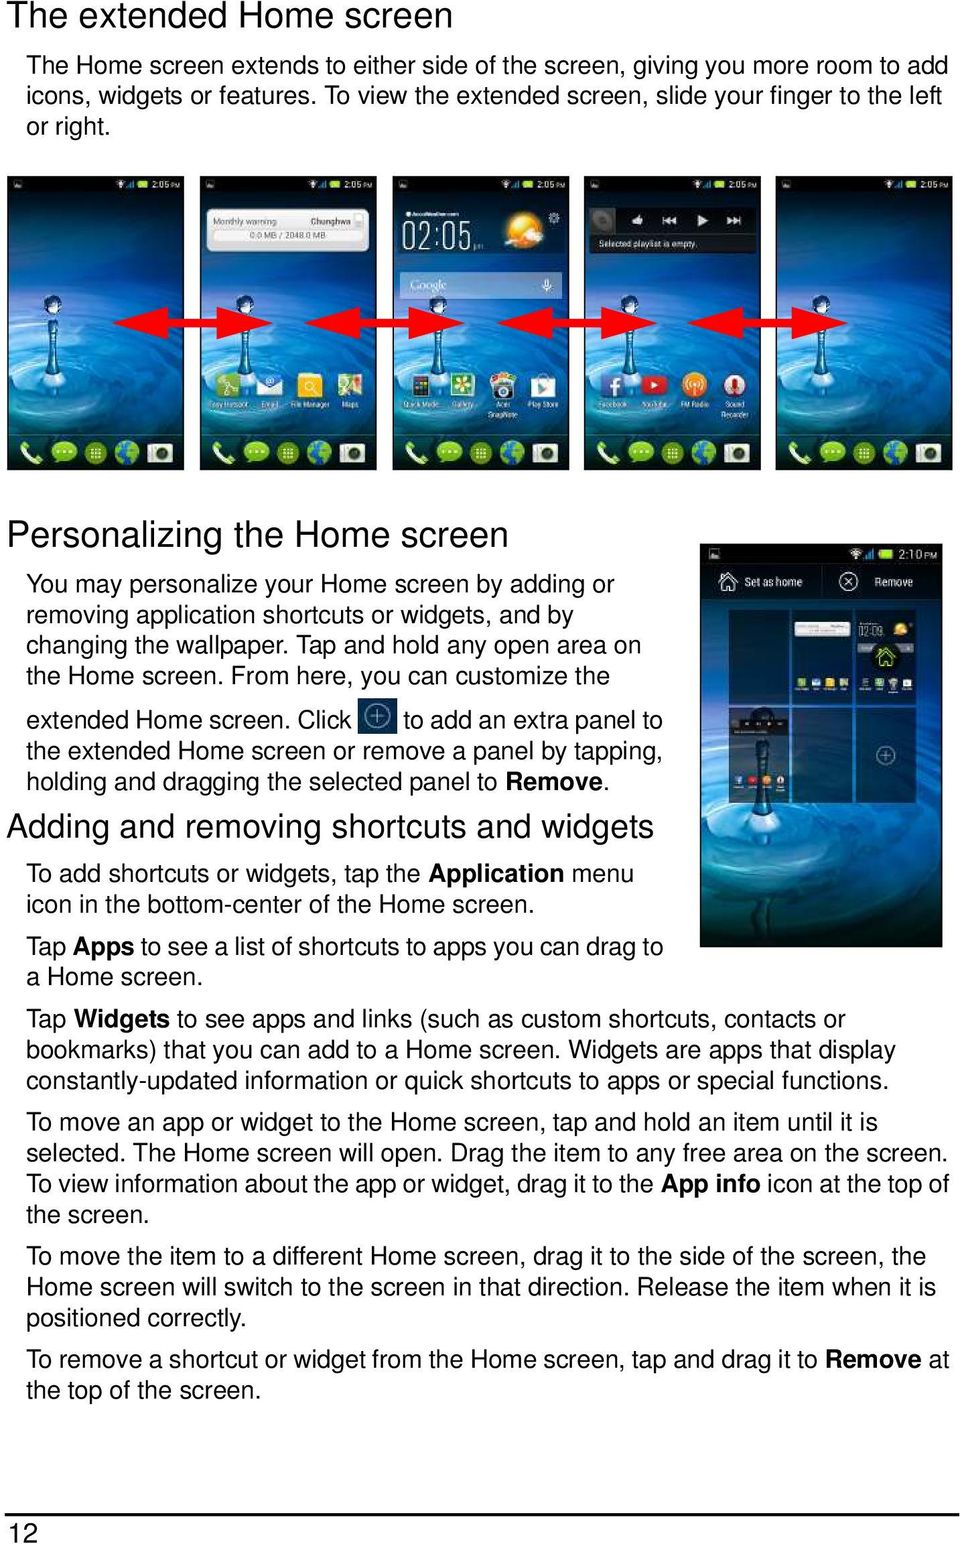 Personalizing the Home screen You may personalize your Home screen by adding or removing application shortcuts or widgets, and by changing the wallpaper. Tap and hold any open area on the Home screen.